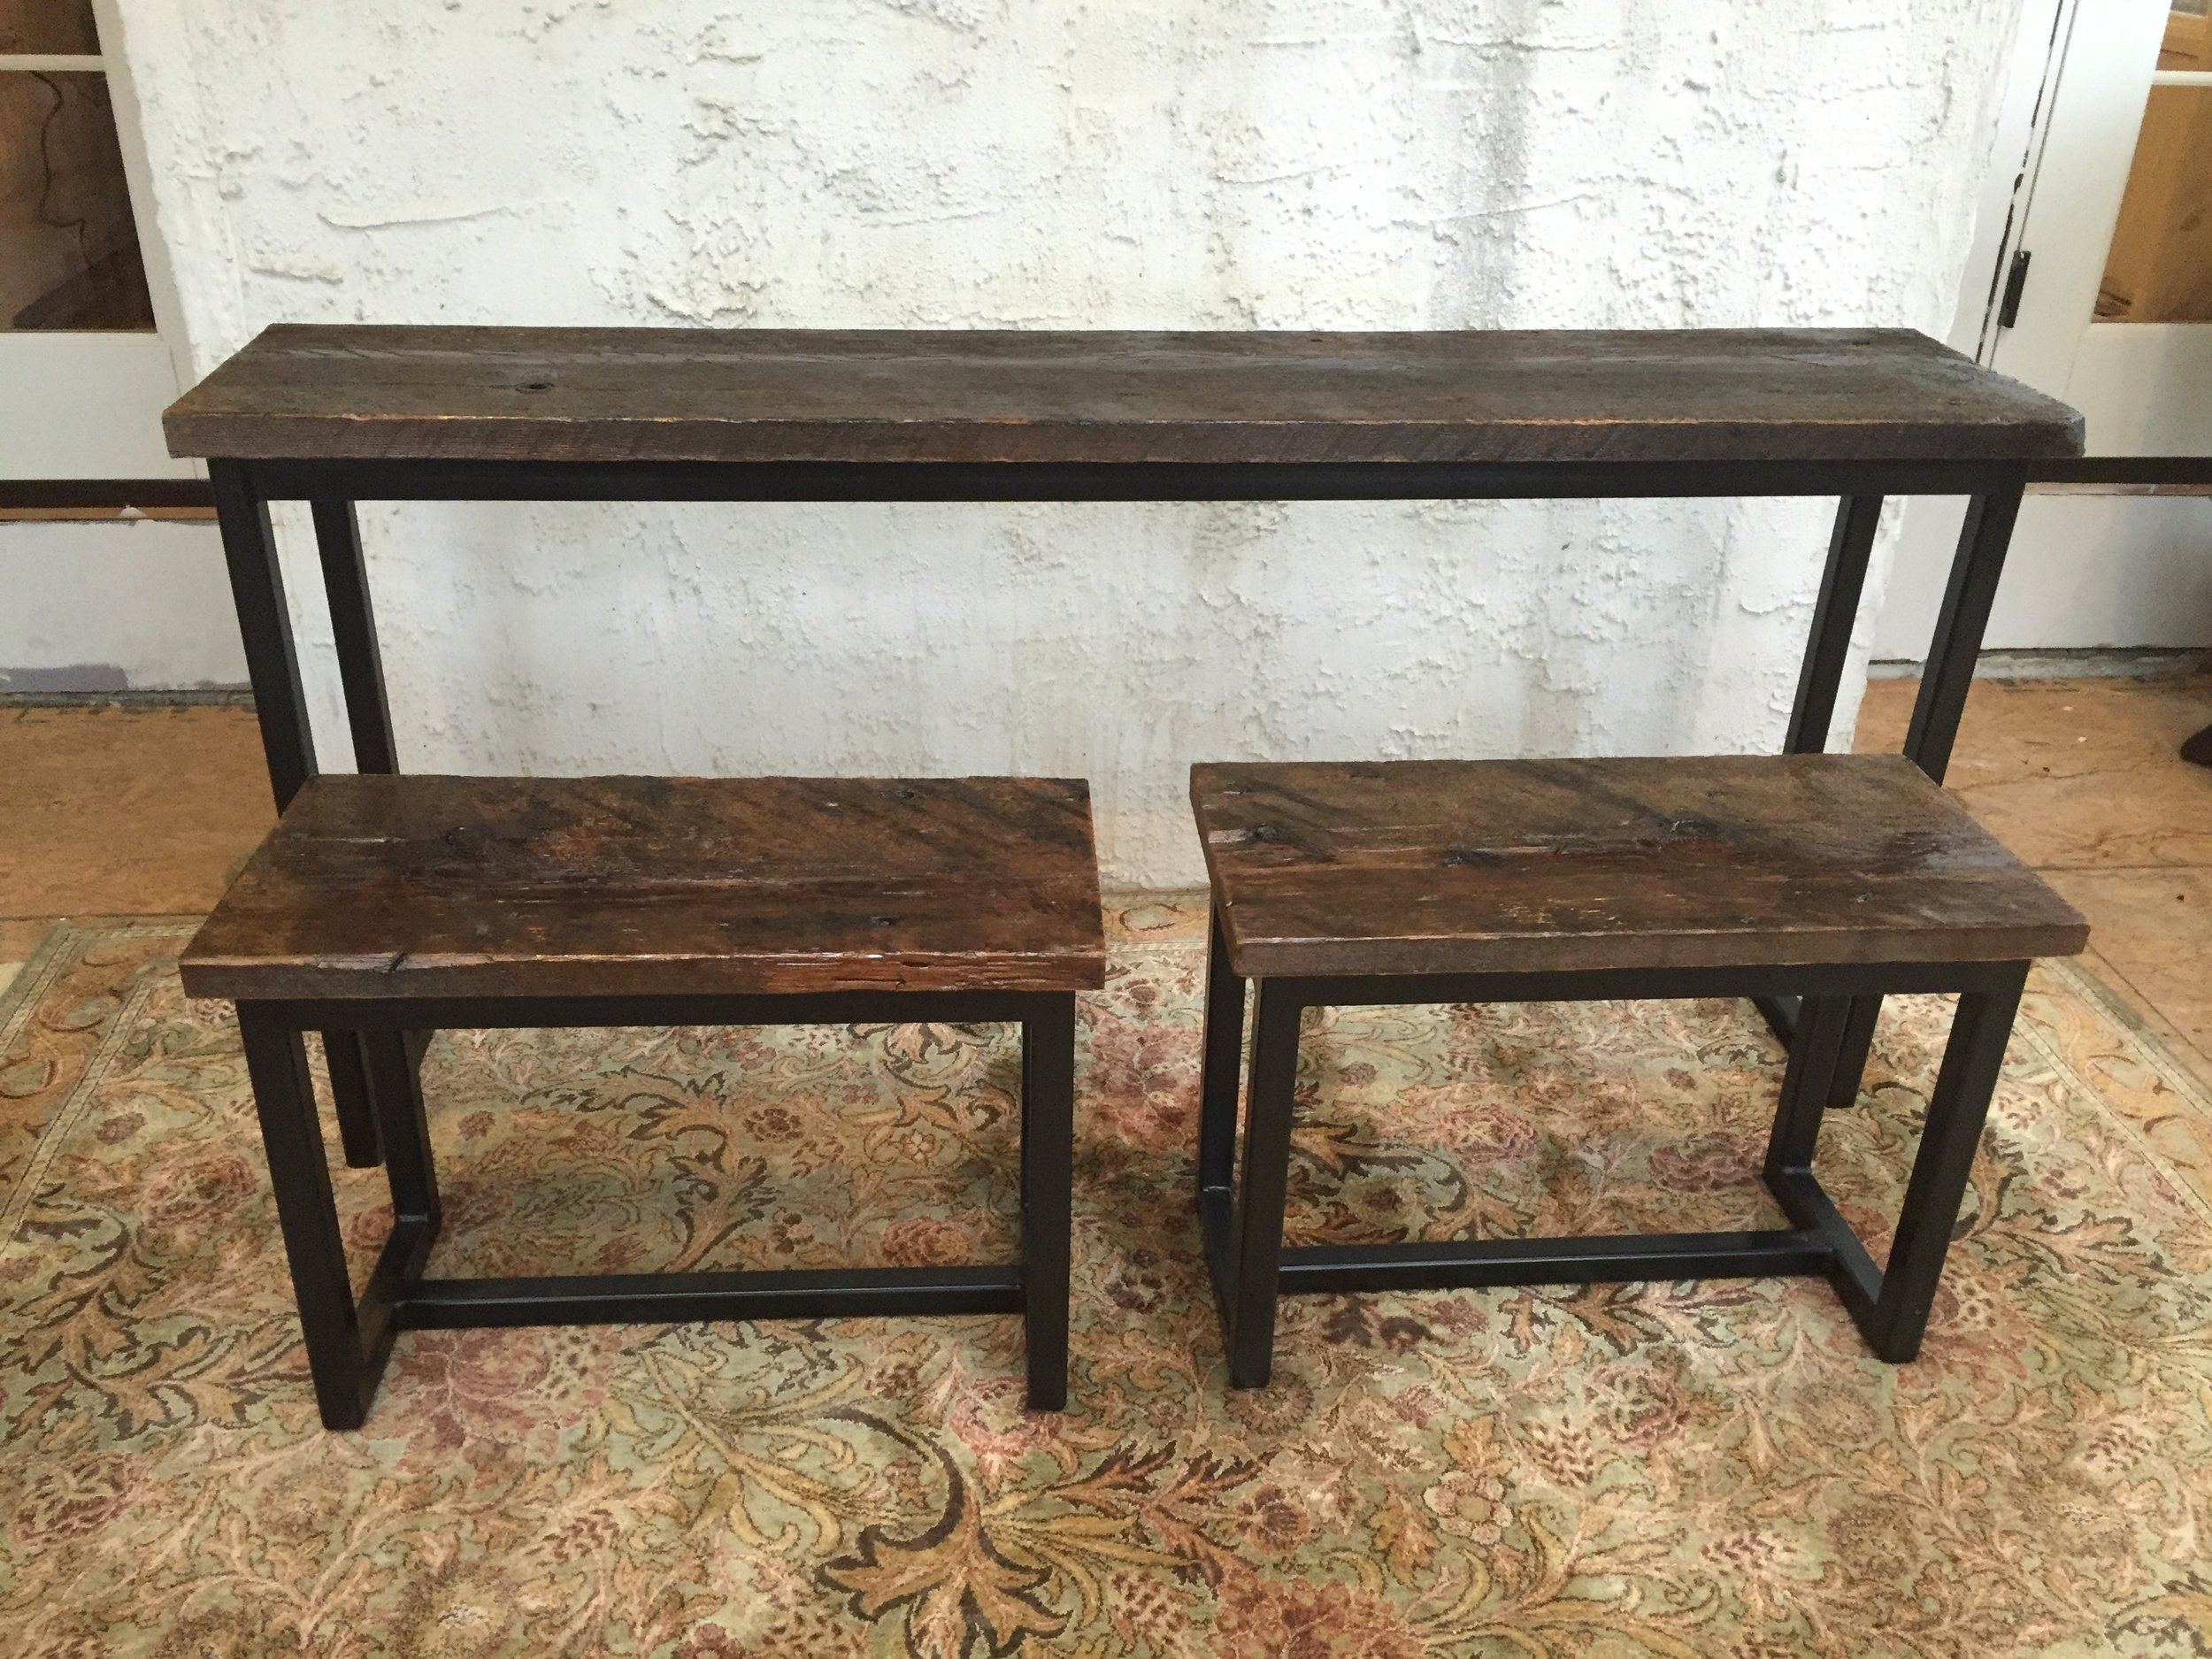 A client was brought to me who had a number of old barn beams on their property. They wanted to make a simple sofa table with some nesting benches. JGM, Inc provided the bases for the benches and table.The barn wood was very rough initially, and it was delicate work to find a balance that made it pleasant to the touch without removing the patina of age the wood had acquired over the years.